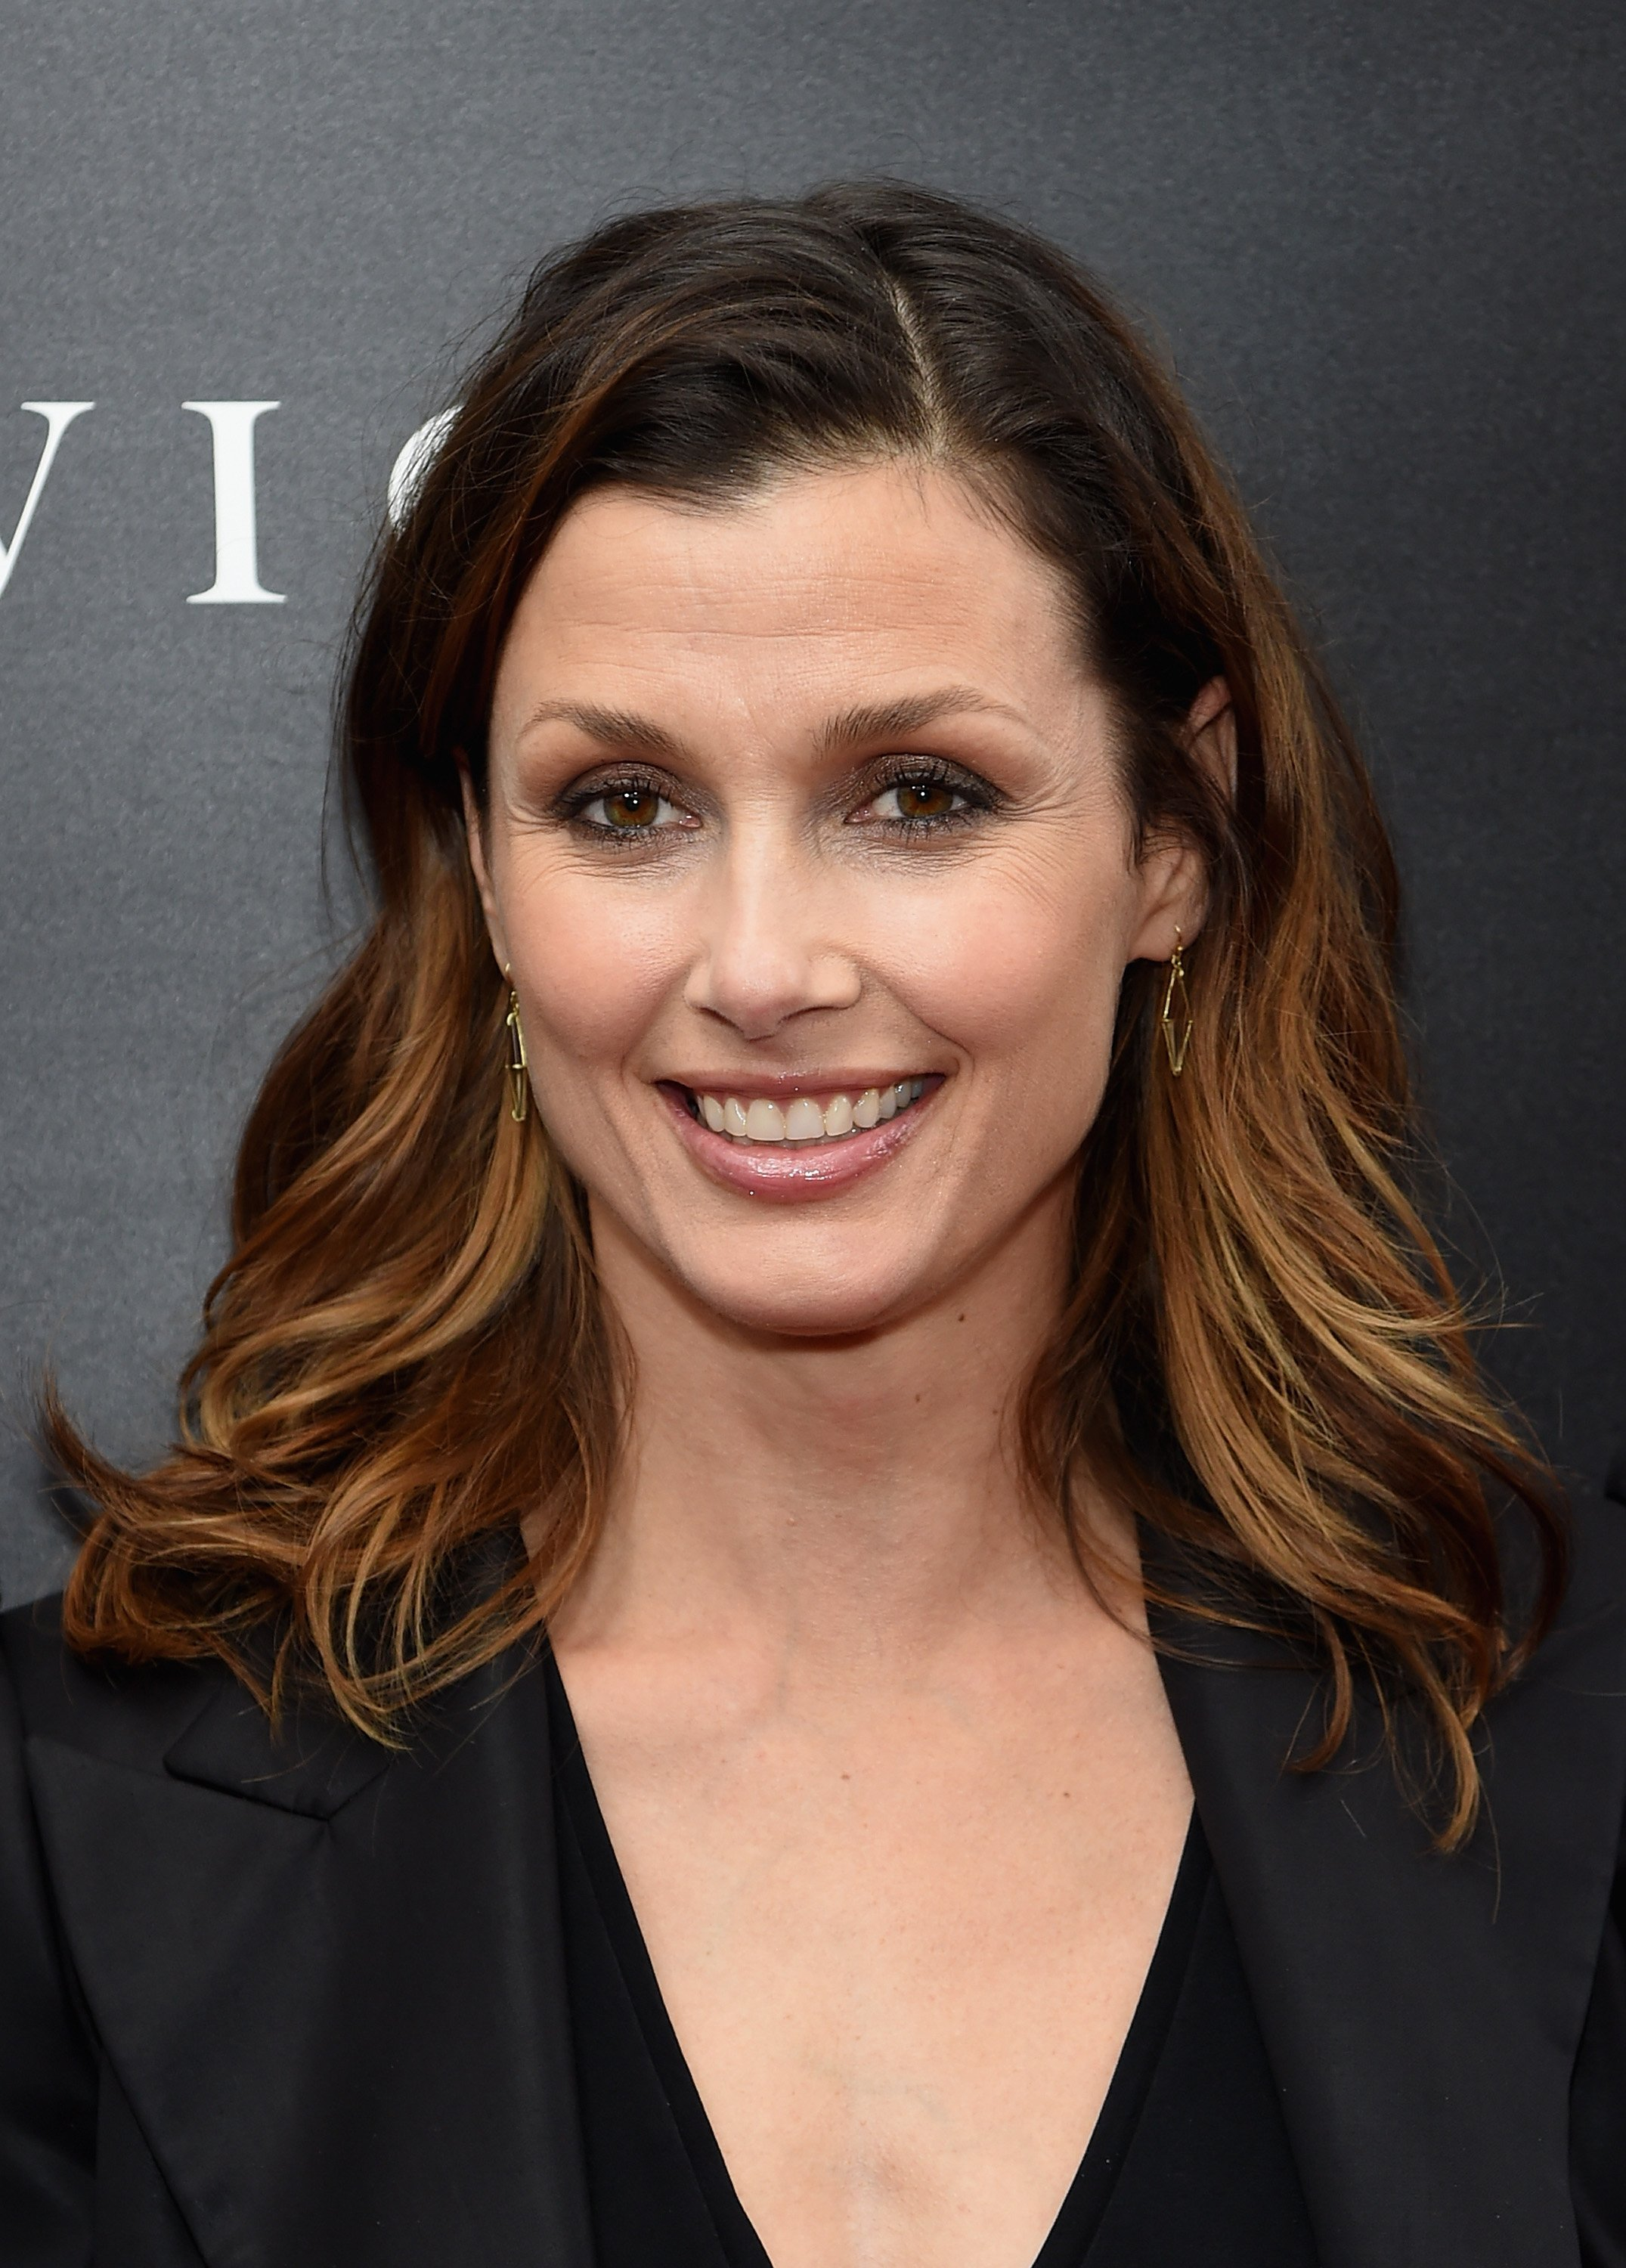 """Bridget Moynahan attends the premiere of """"John Wick"""" in New York City on October 13, 2014 